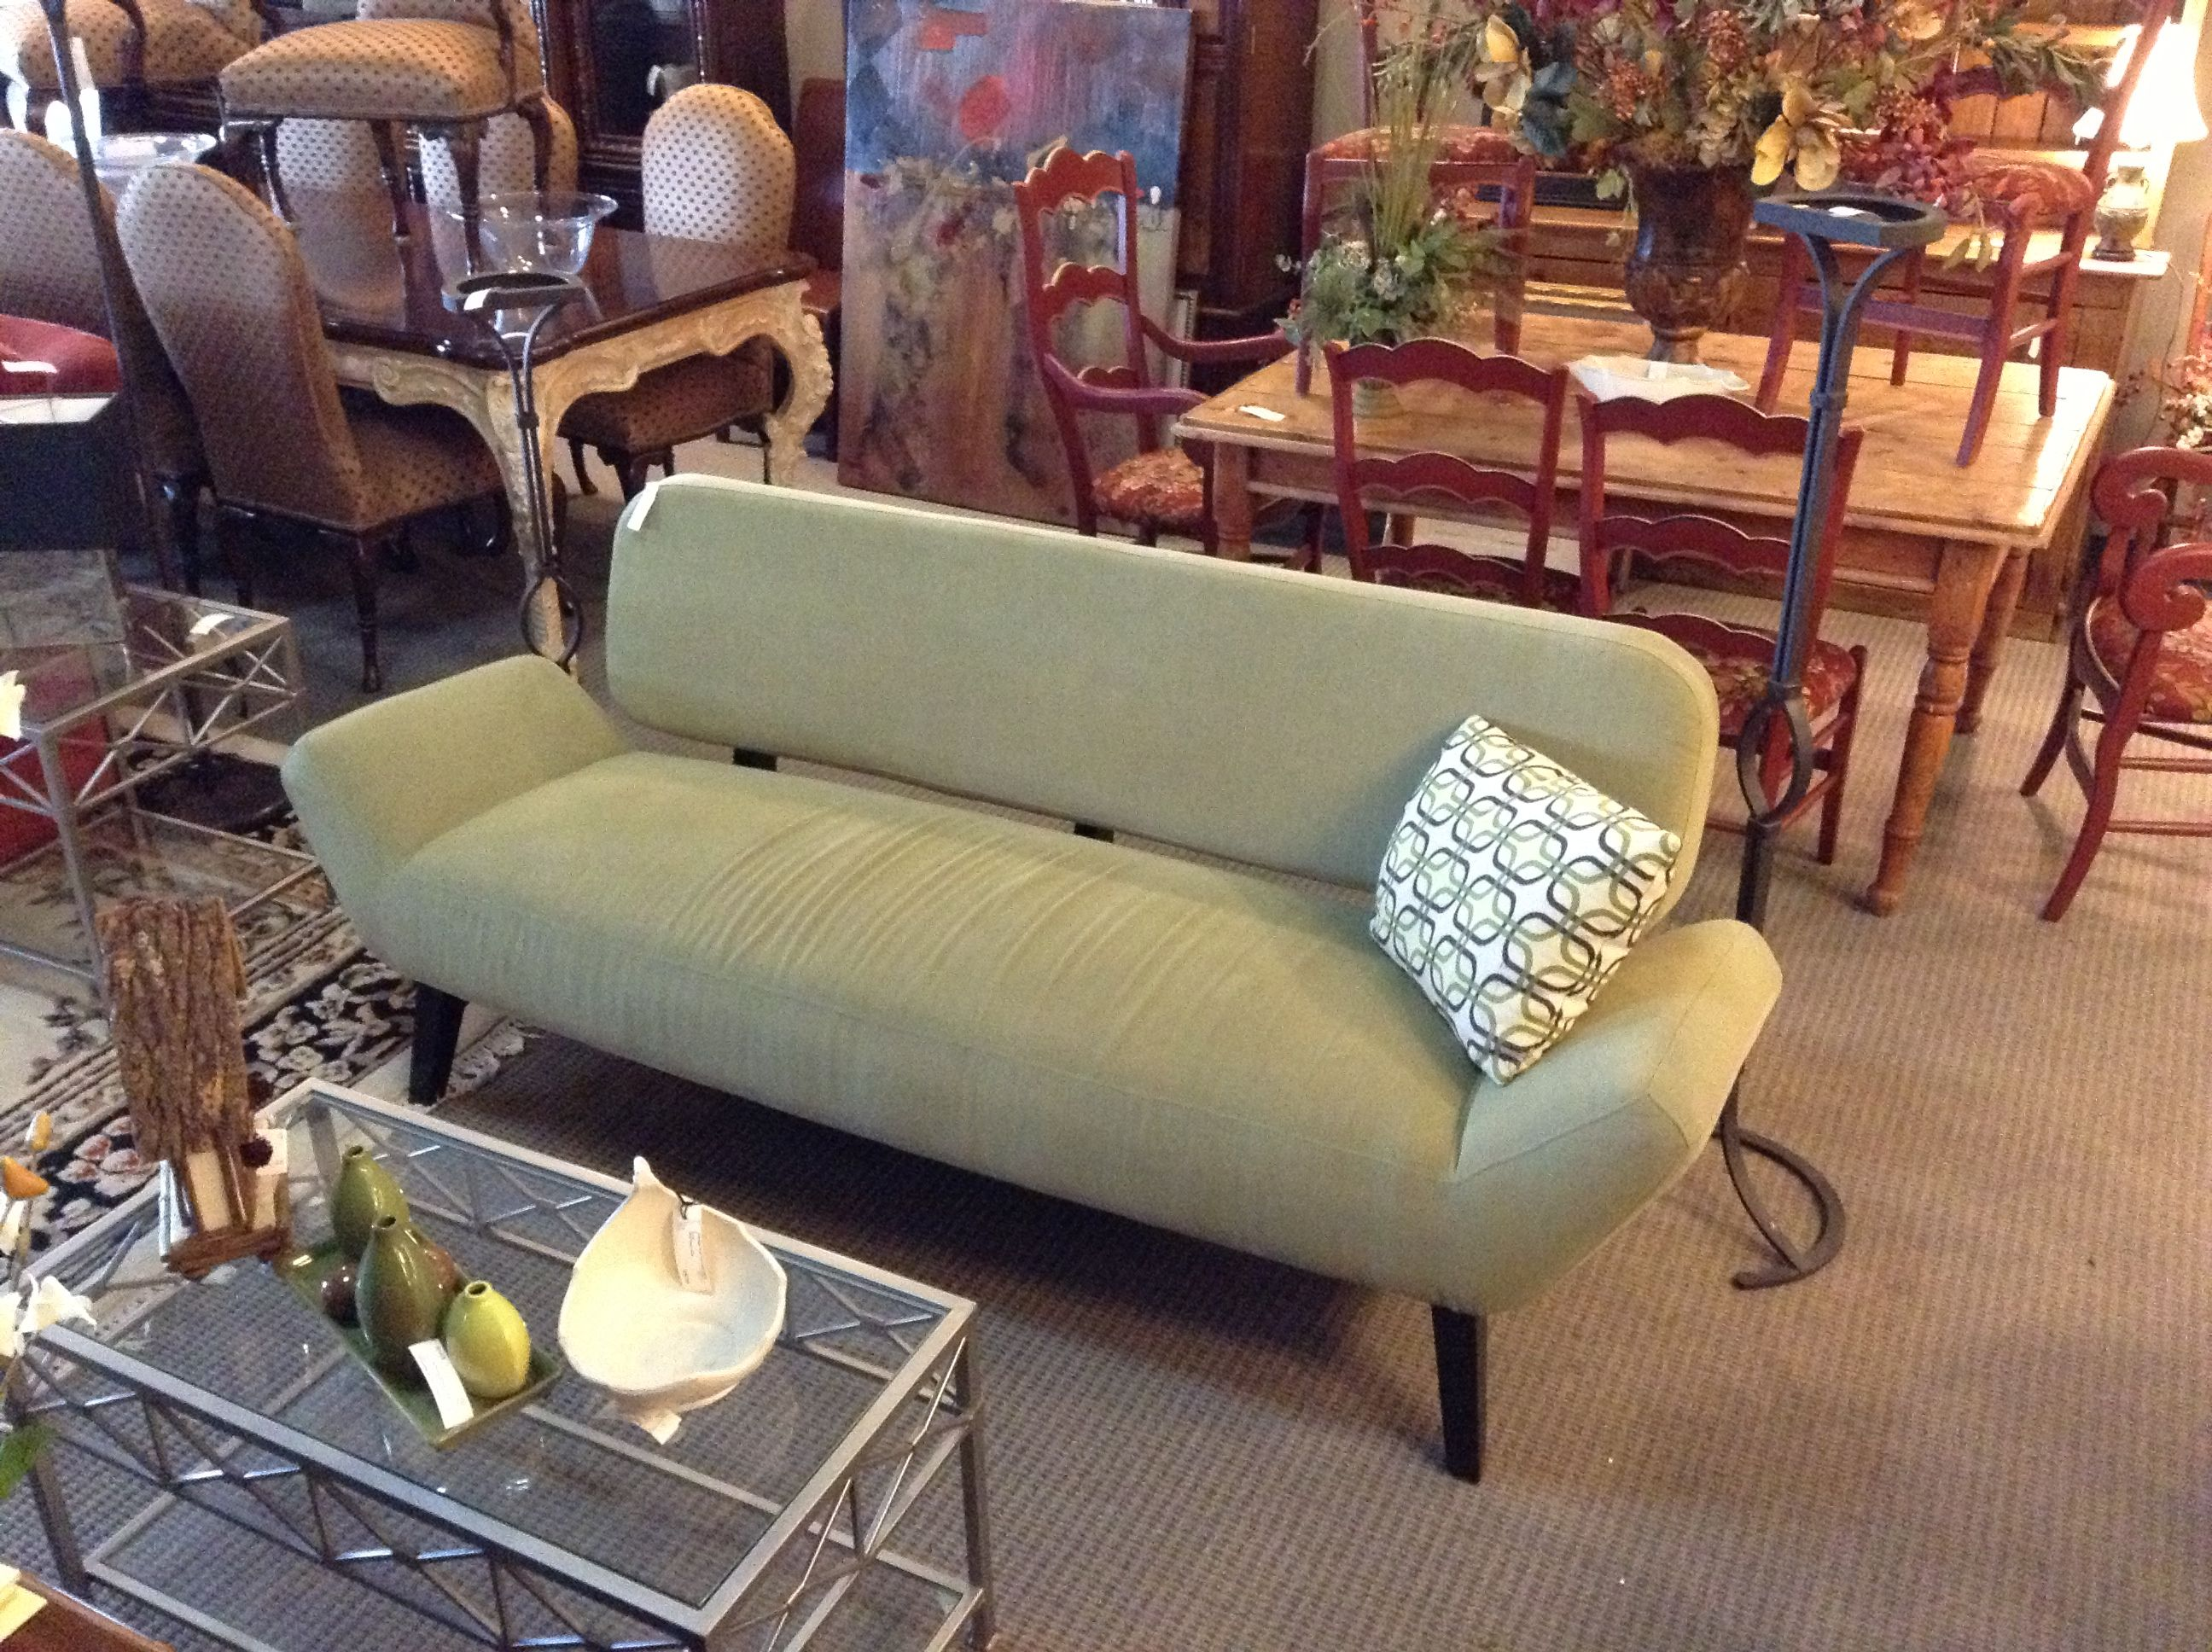 Olive Green Contemporary Sofa Found At Design With Consignment In Austin,Texas.  I Gotta